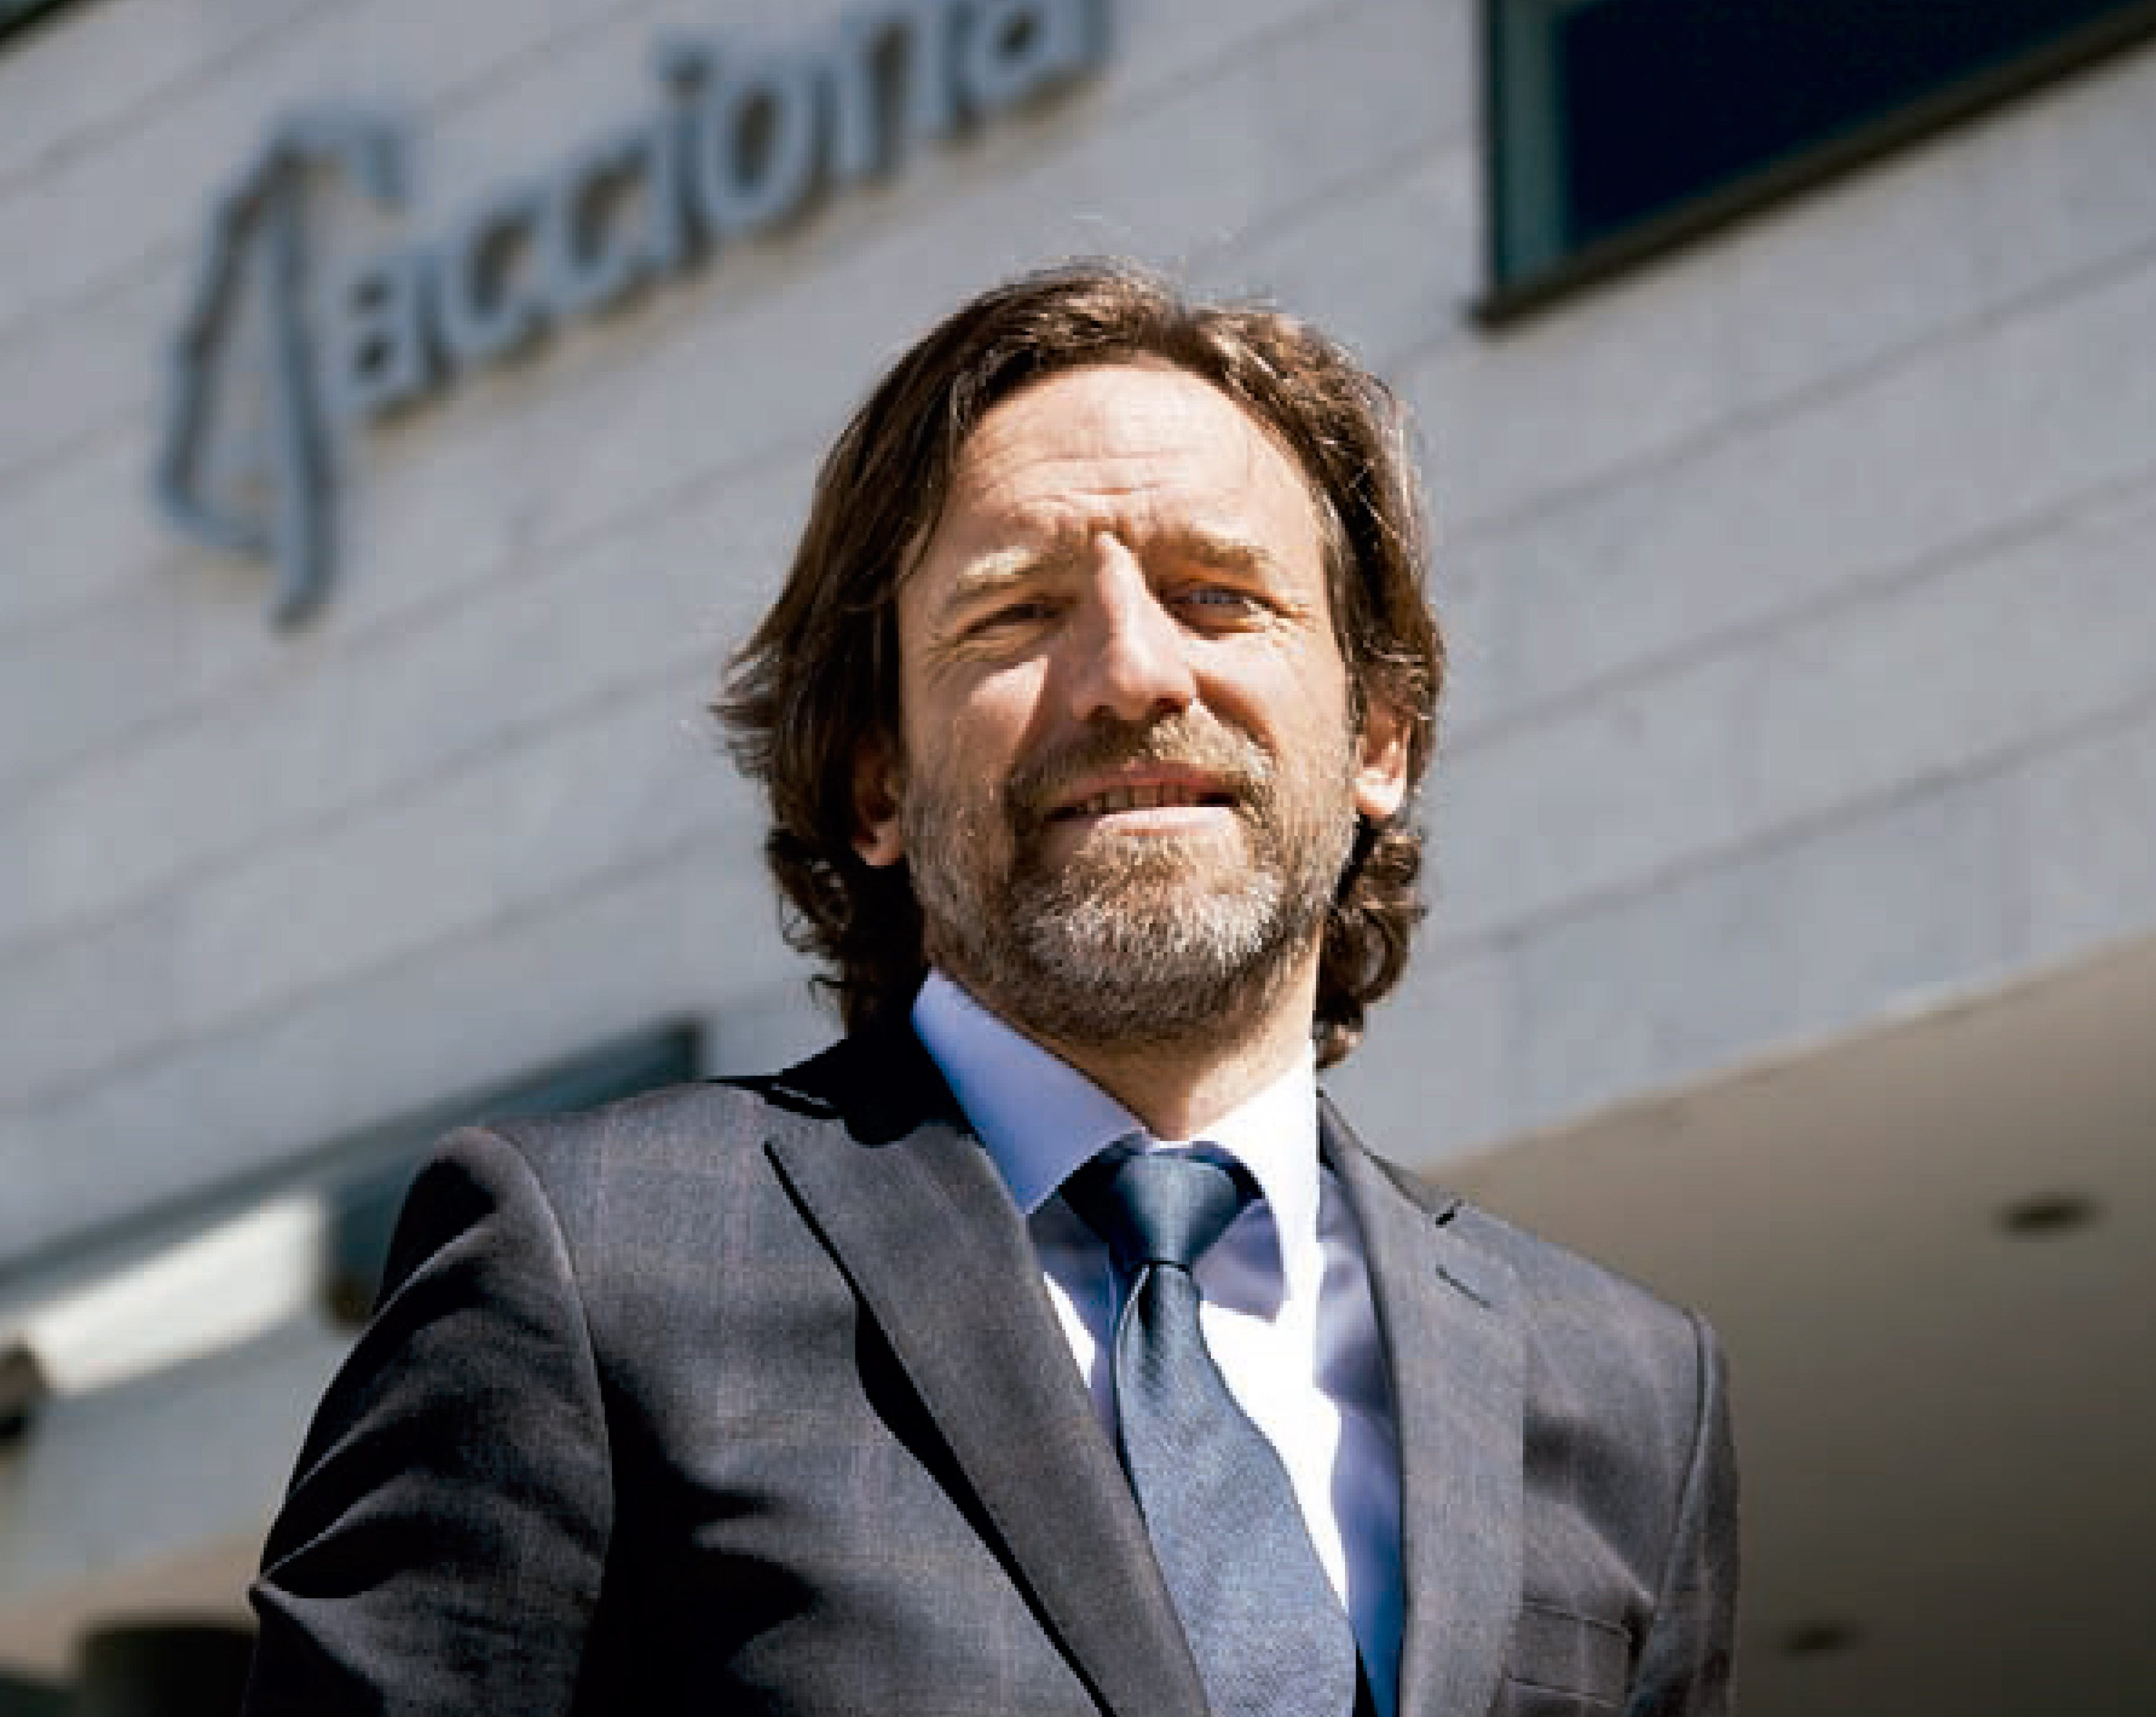 Luis Baz, Director de ACCIONA Ingeniería